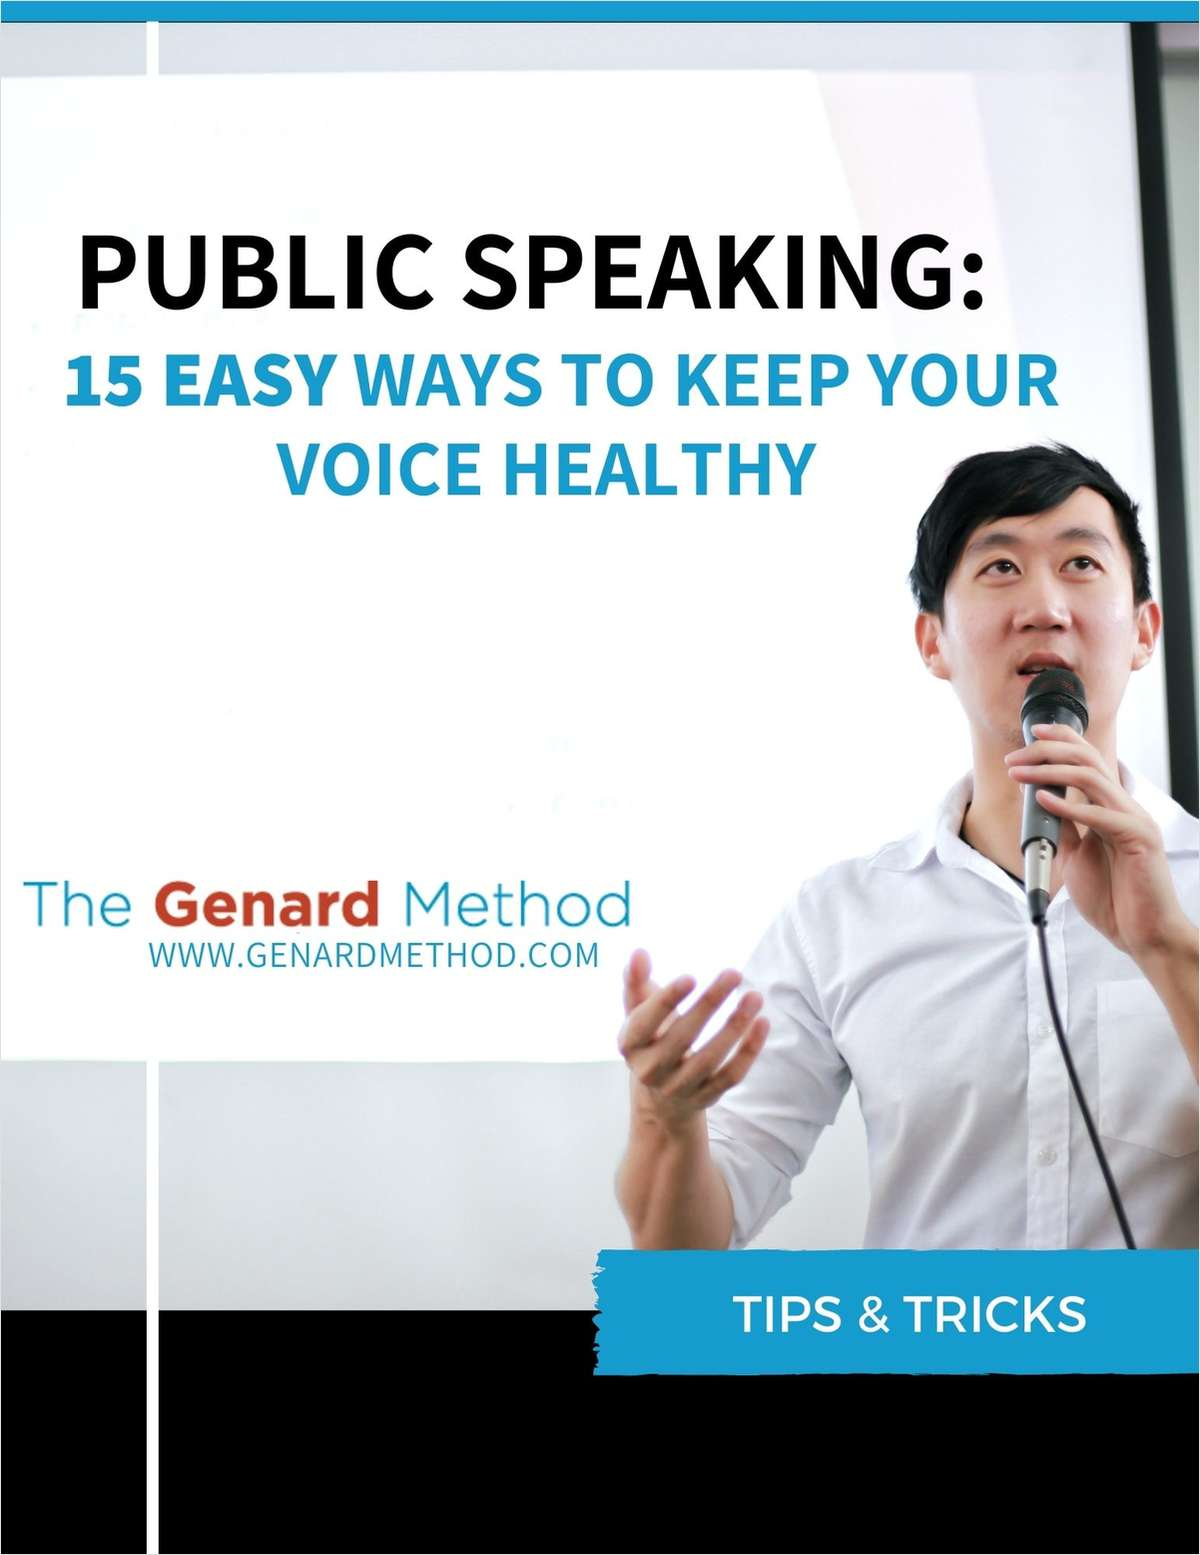 Public Speaking: 15 Easy Ways to Keep Your Voice Healthy